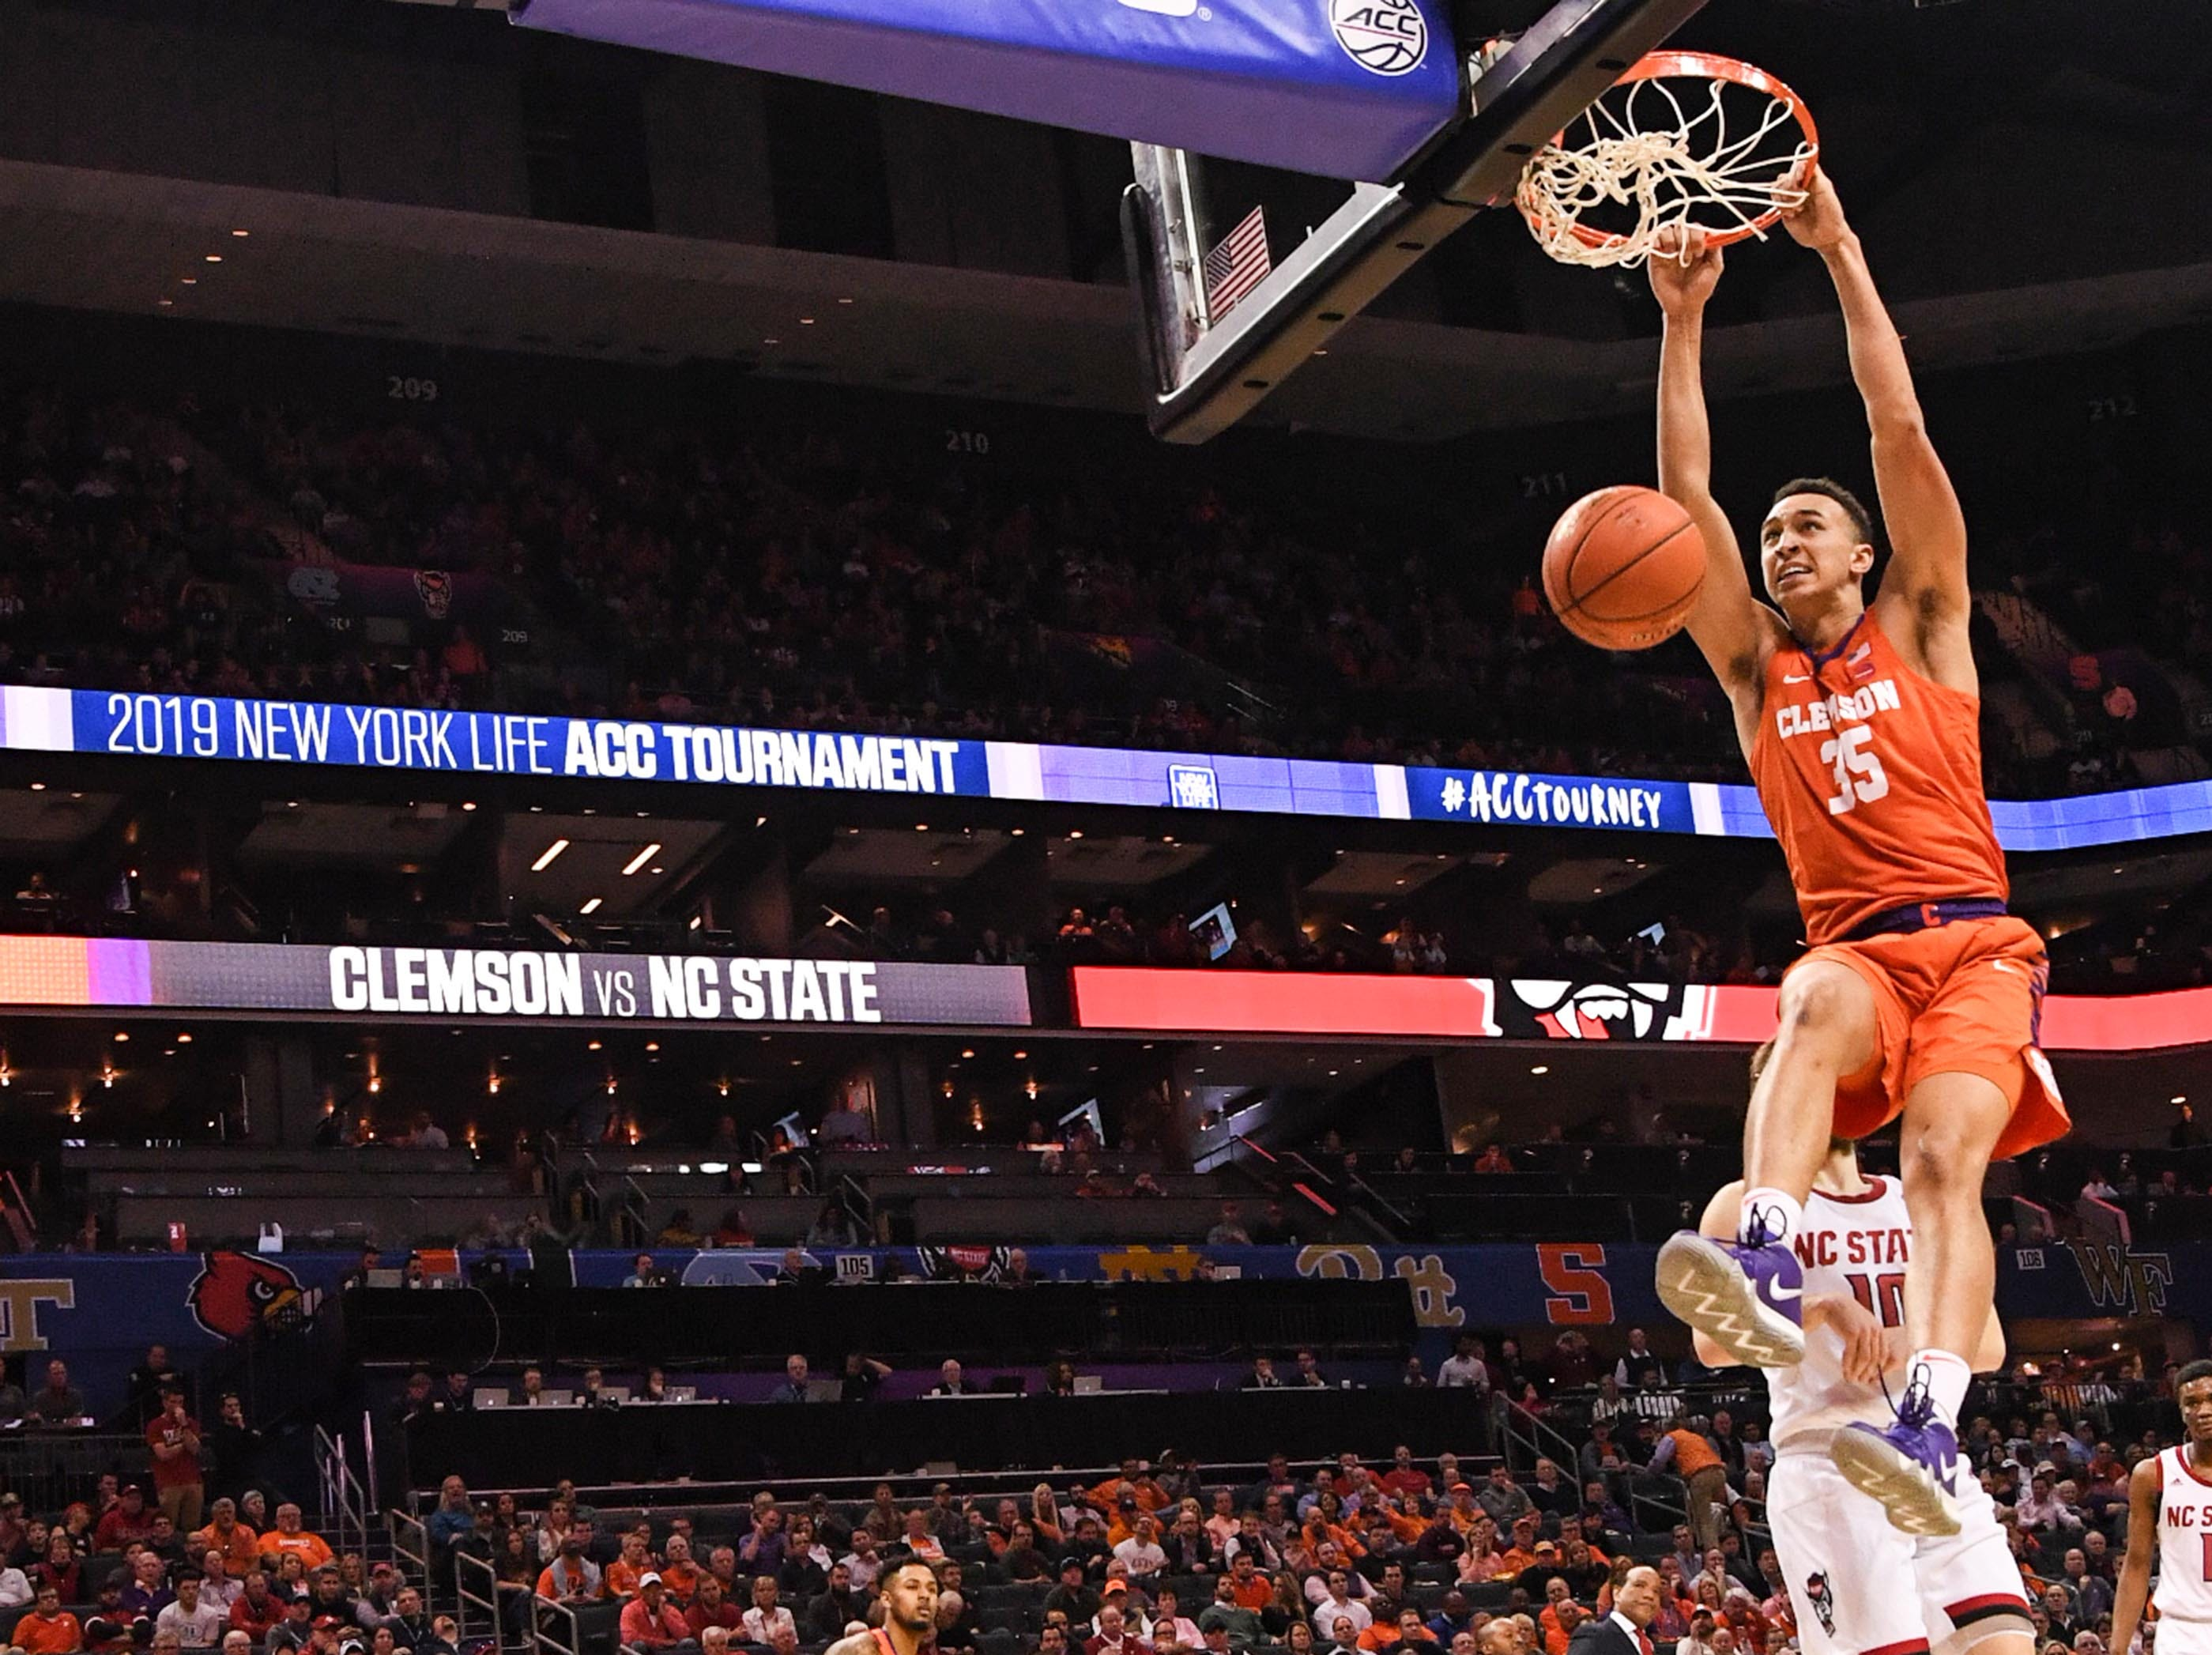 Clemson forward Javan White (35) dunks against N.C. State during the first half at the Spectrum Center in Charlotte, N.C. Tuesday, March 12, 2019.